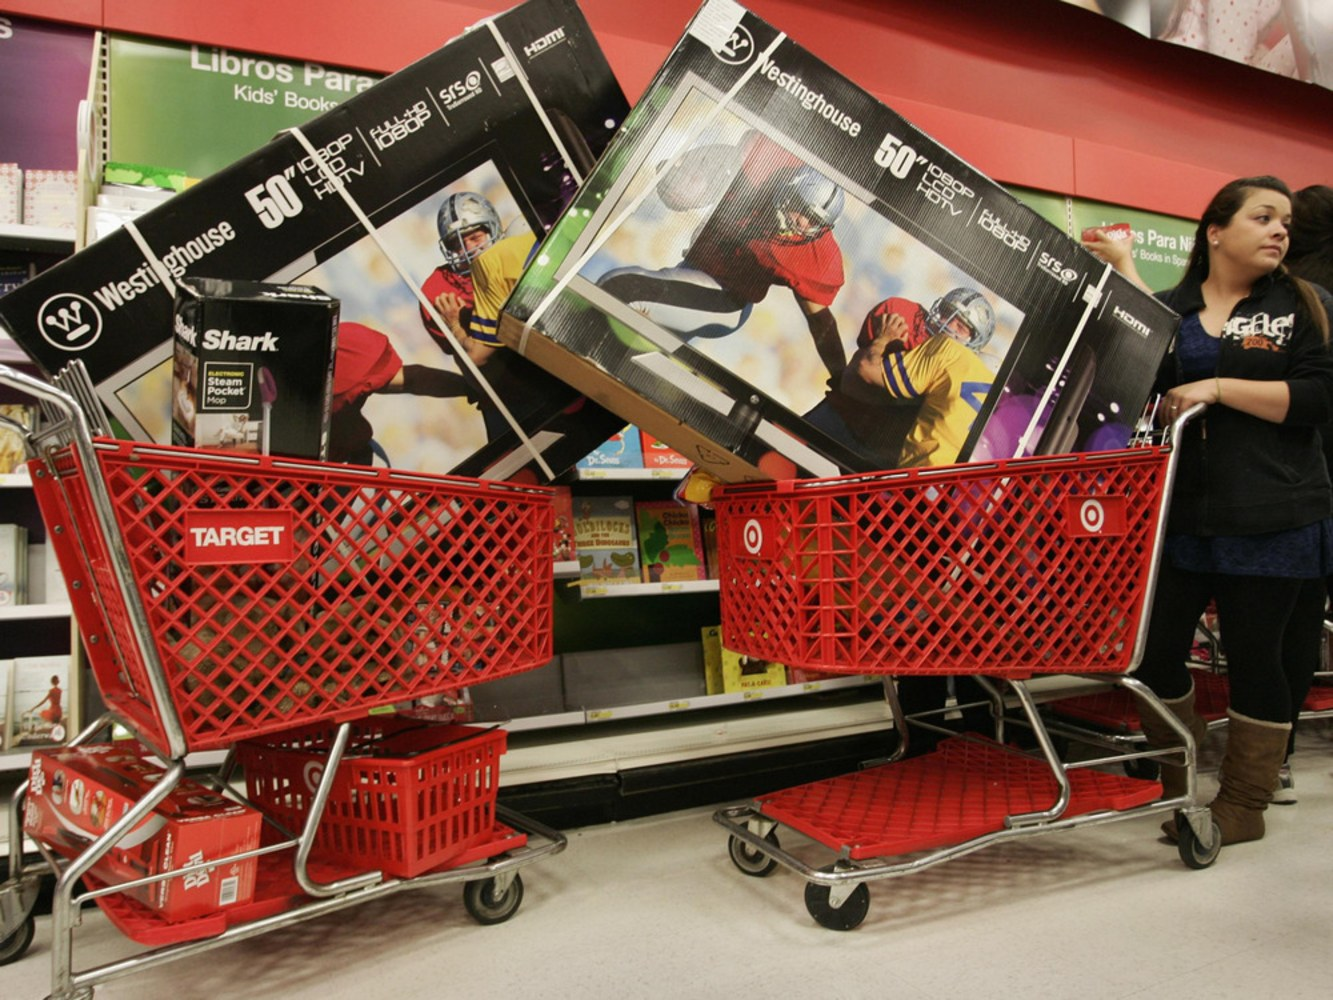 How much will an HDTV cost on Black Friday? Much less